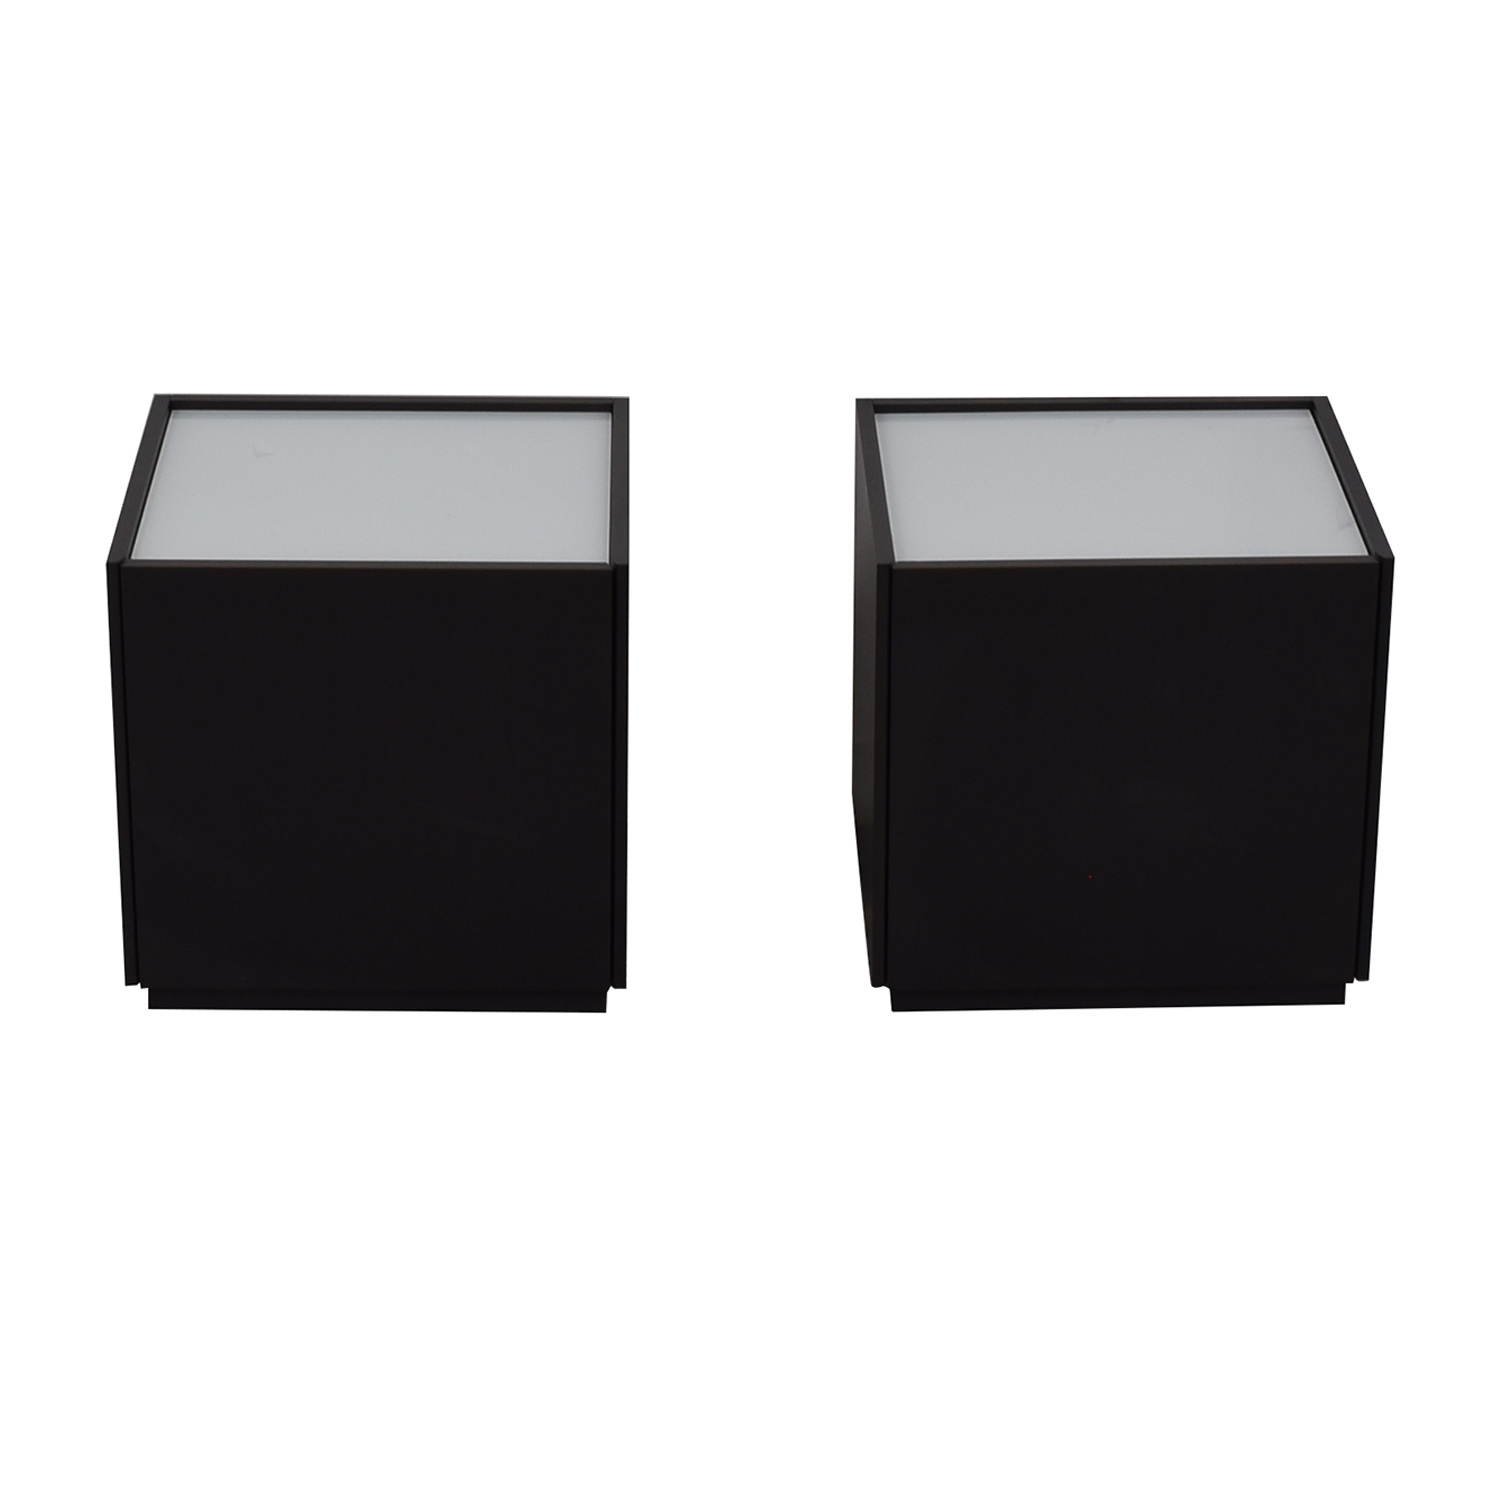 IKEA IKEA White and Black Two-Drawer End Tables used